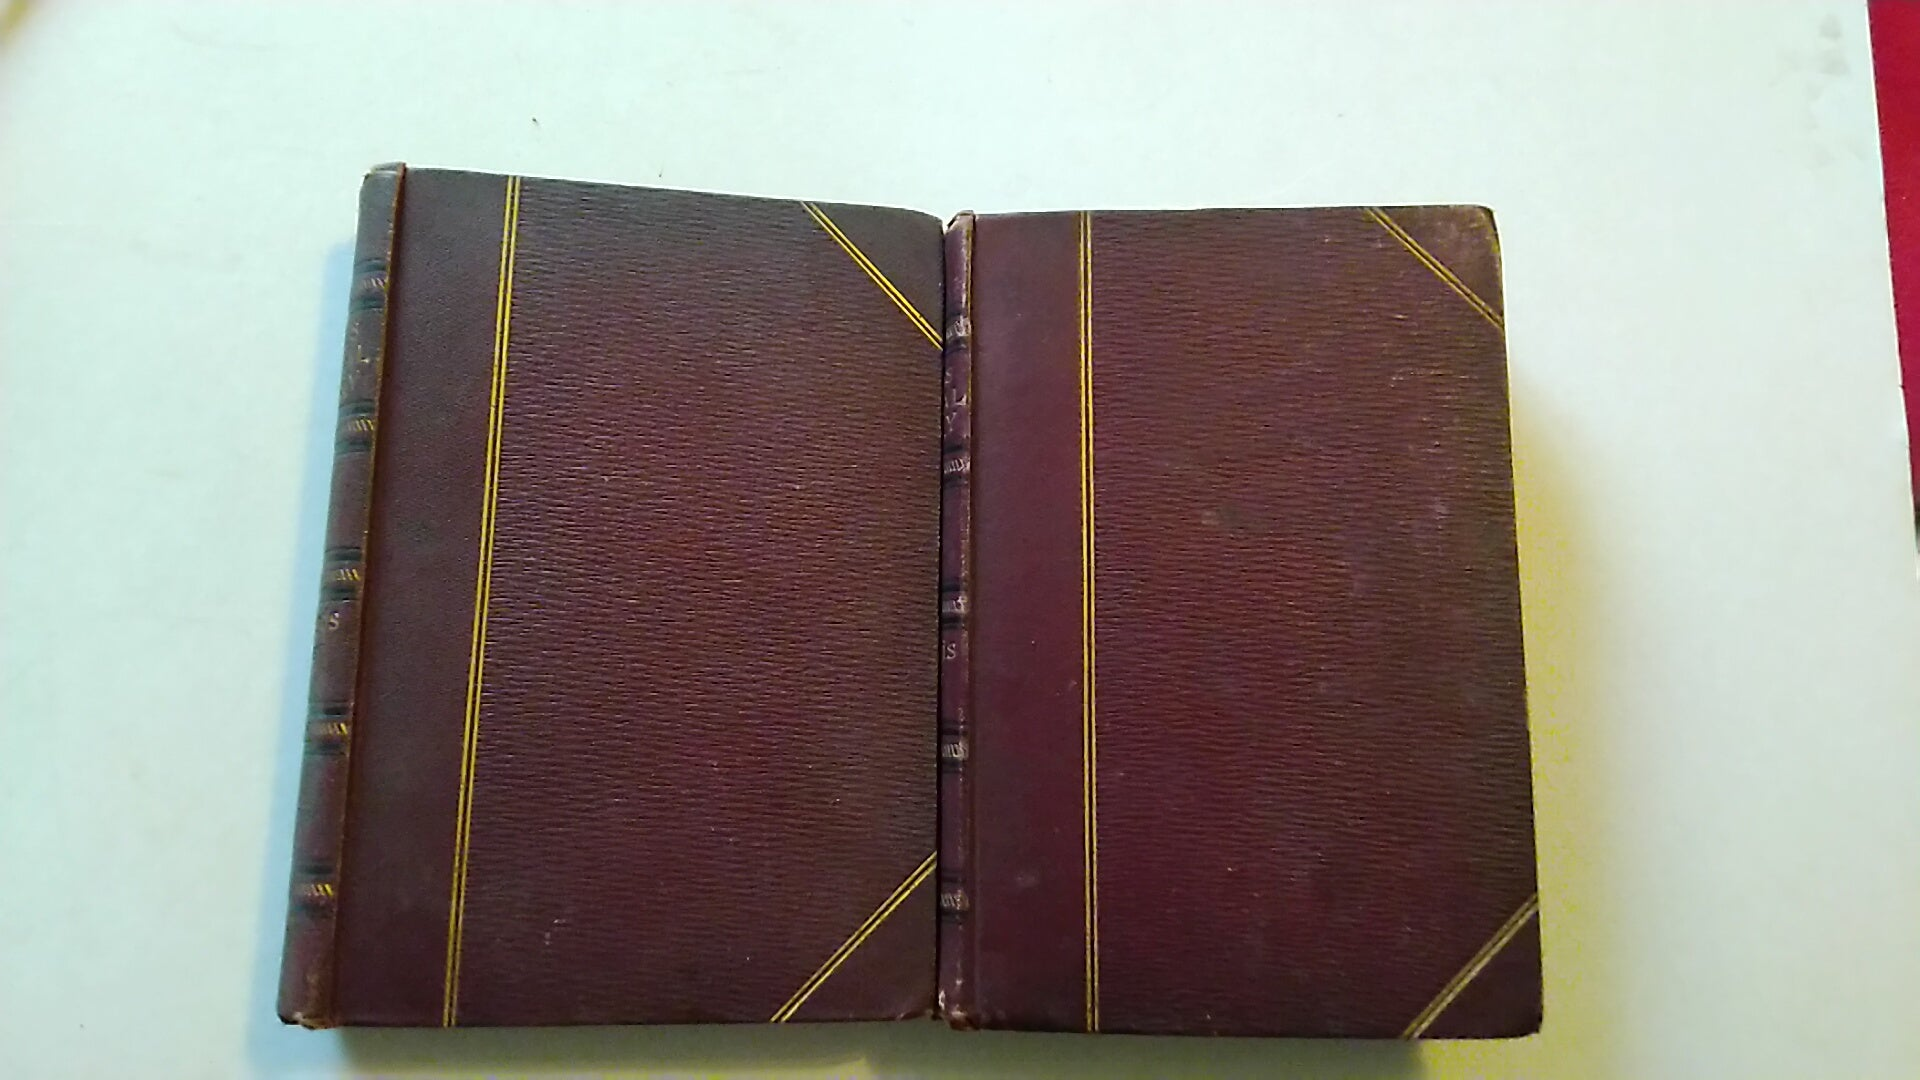 Lloyd's Natural History. A Handbook to the Game-Birds. Vols I & II  W R Oglivie-Grant